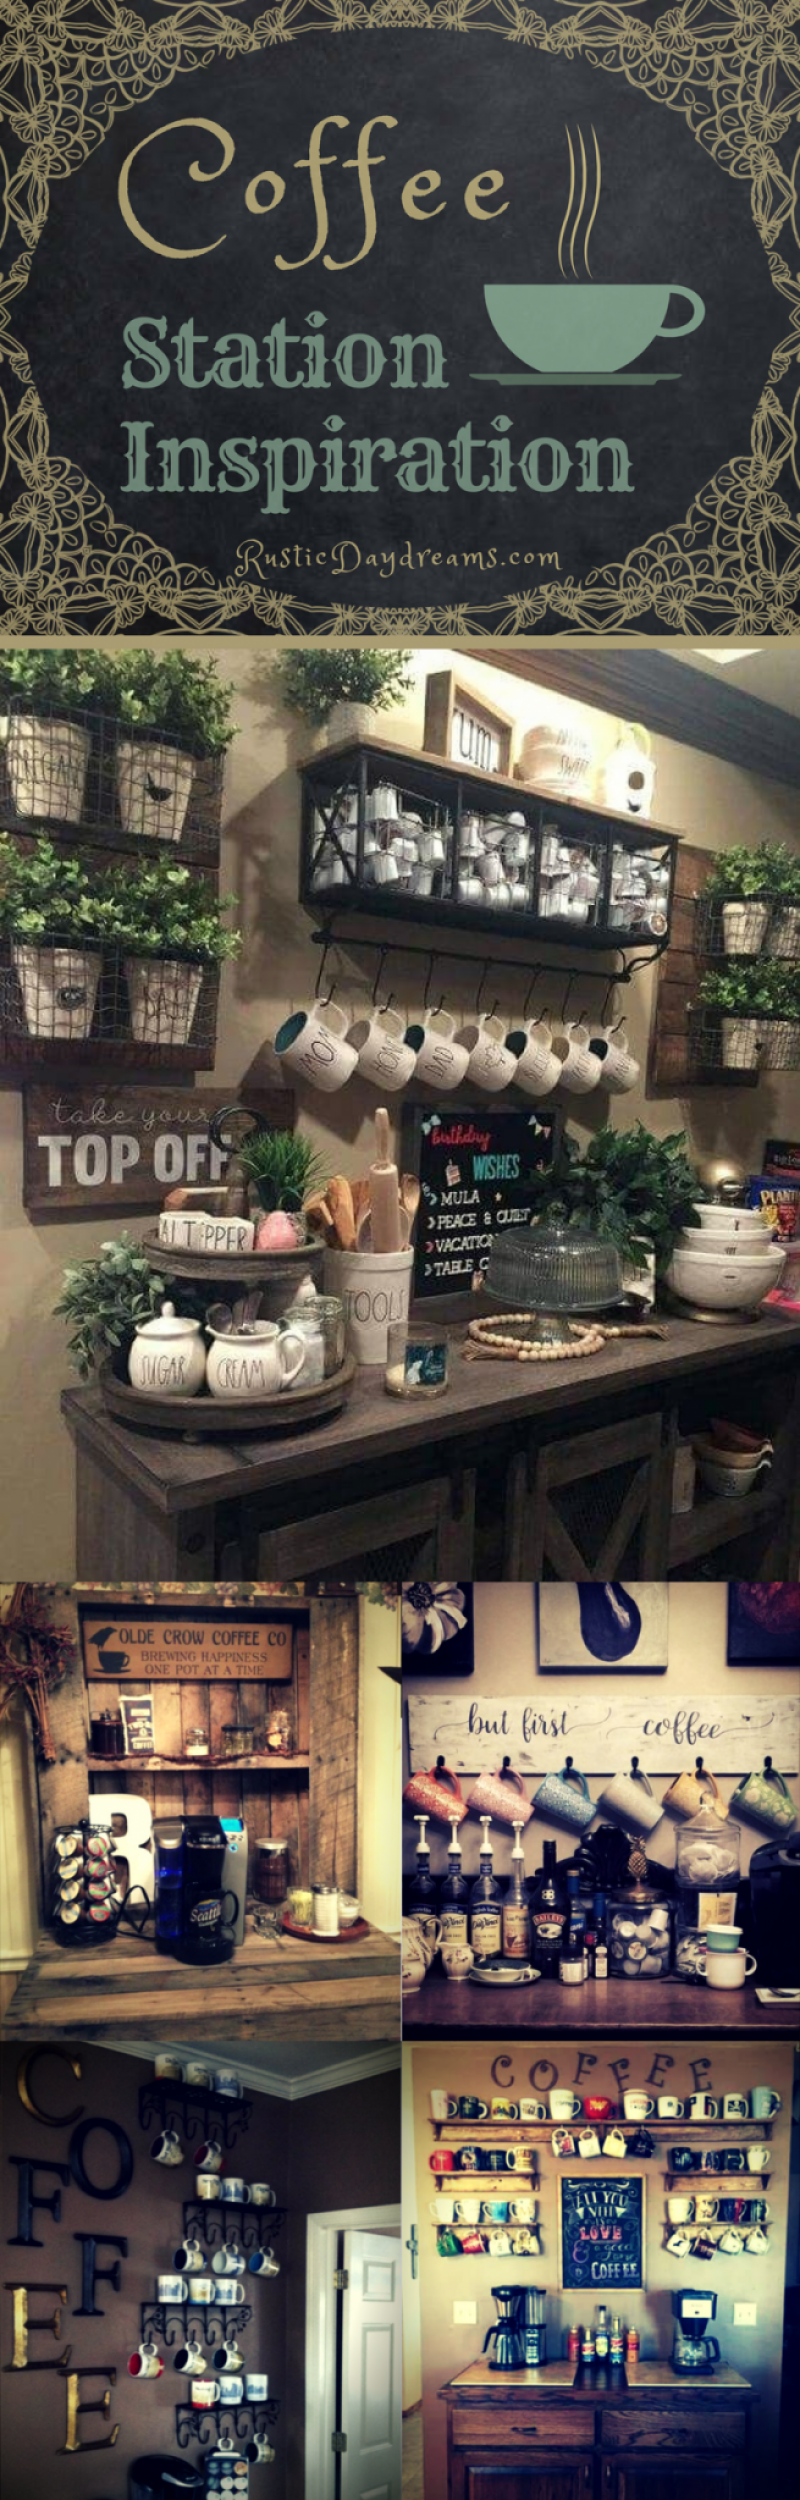 RusticDaydreams.com-Coffee Station Inspiration